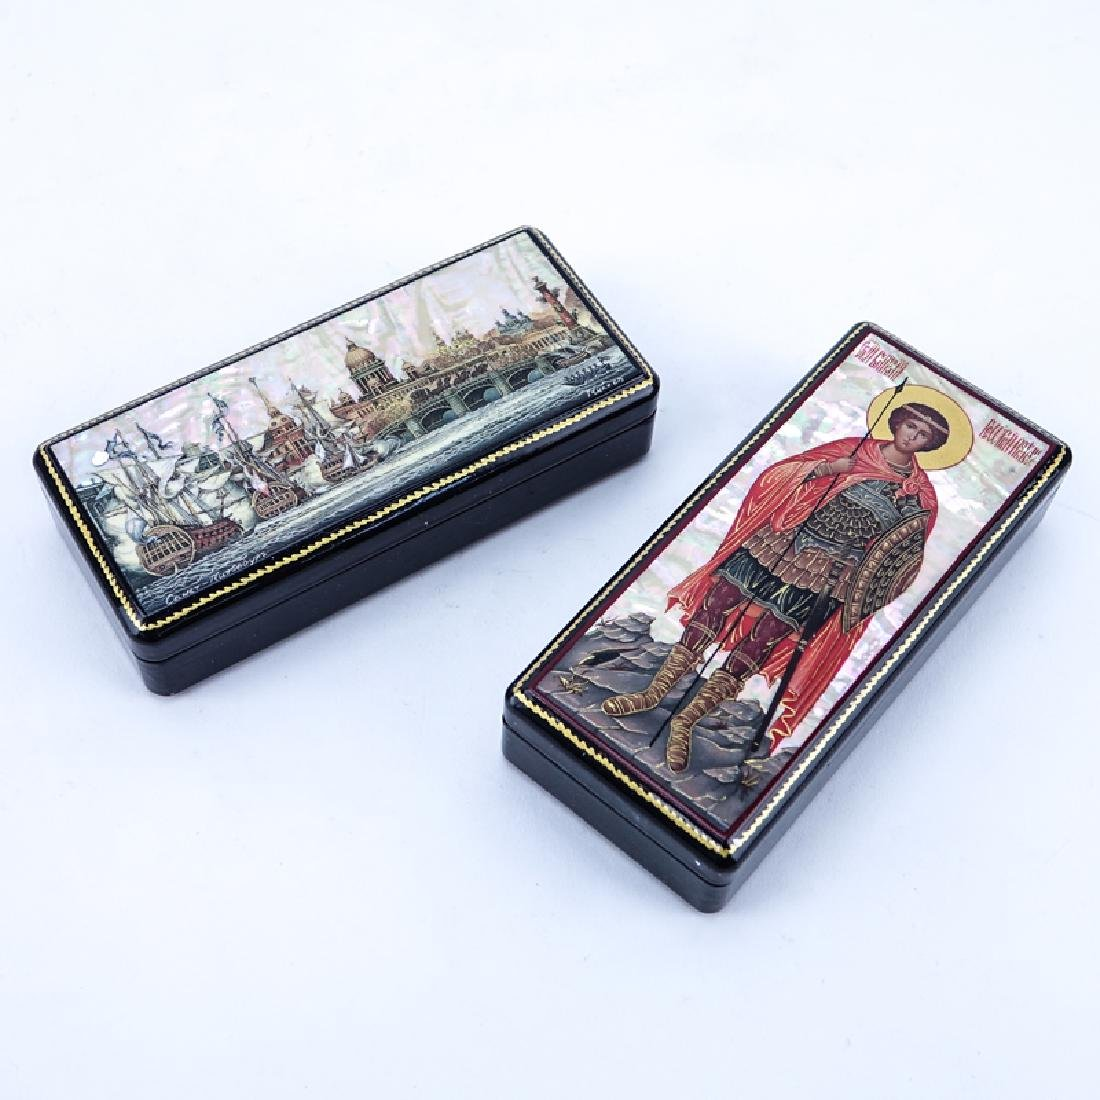 Two (2) Russian Lacquer Boxes with Mother of Pearl, One